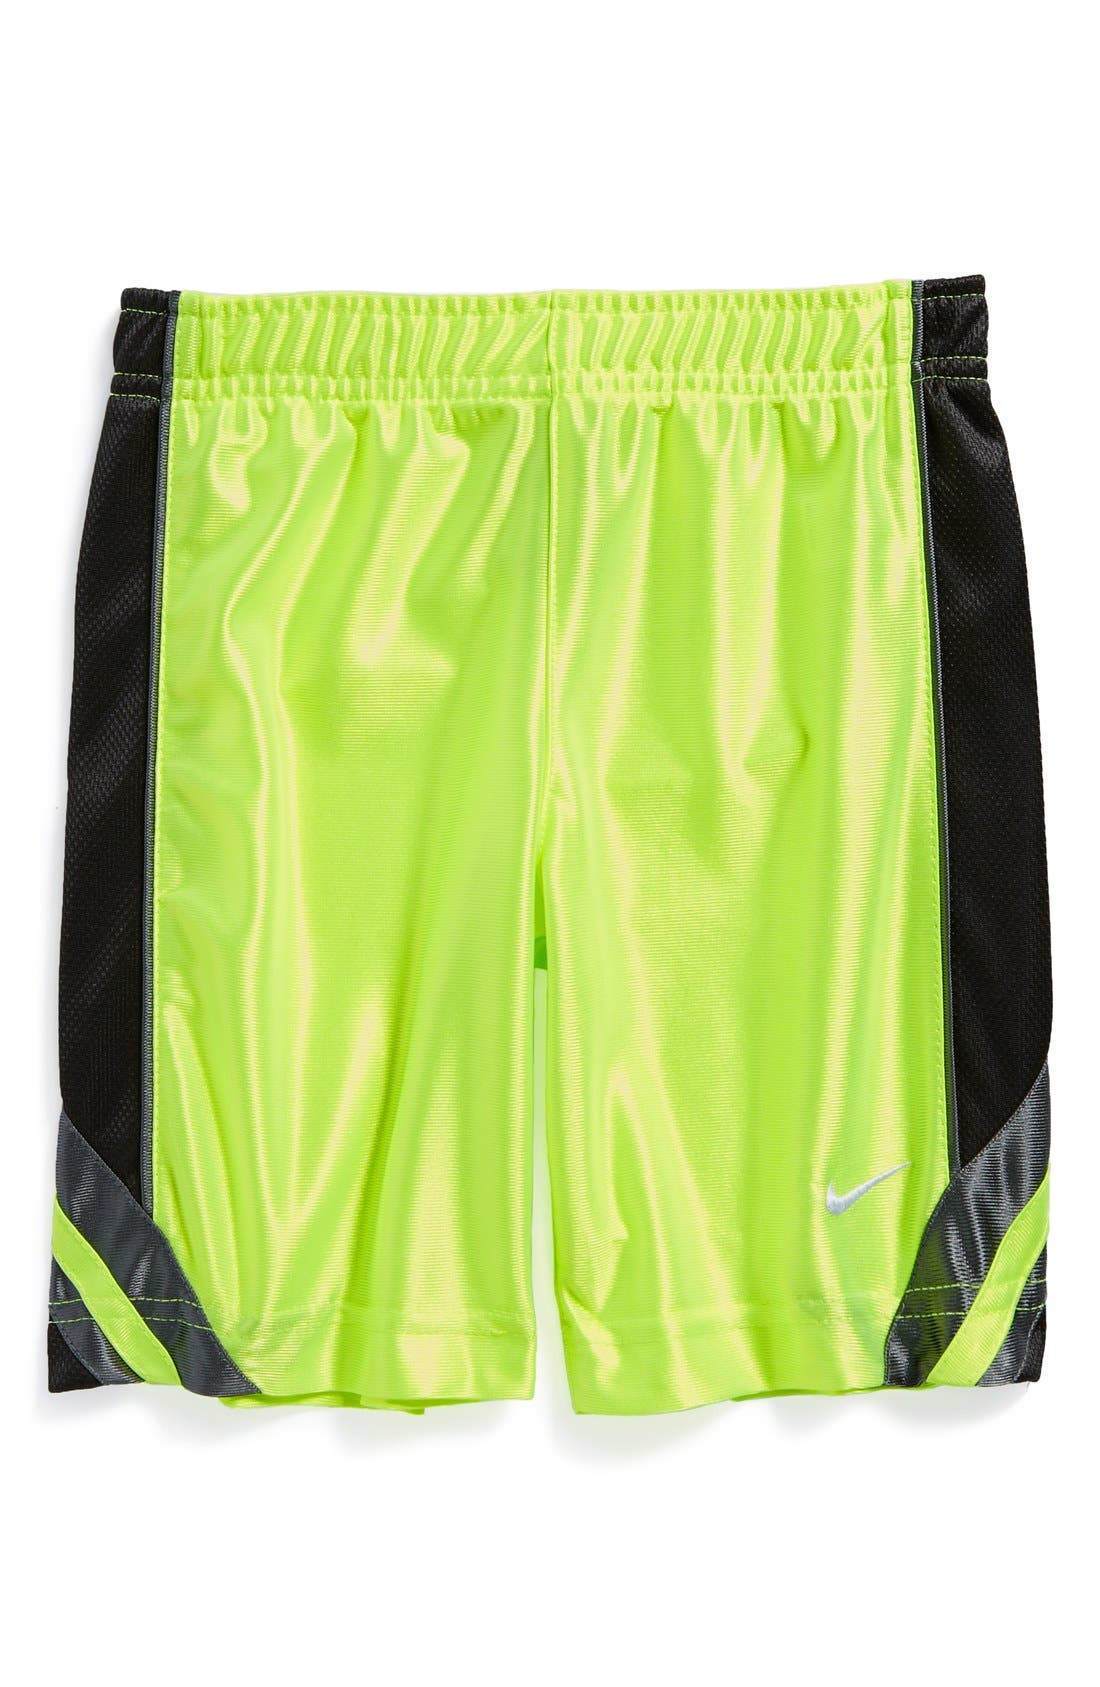 Alternate Image 1 Selected - Nike 'Dunk V2' Shorts (Little Boys)